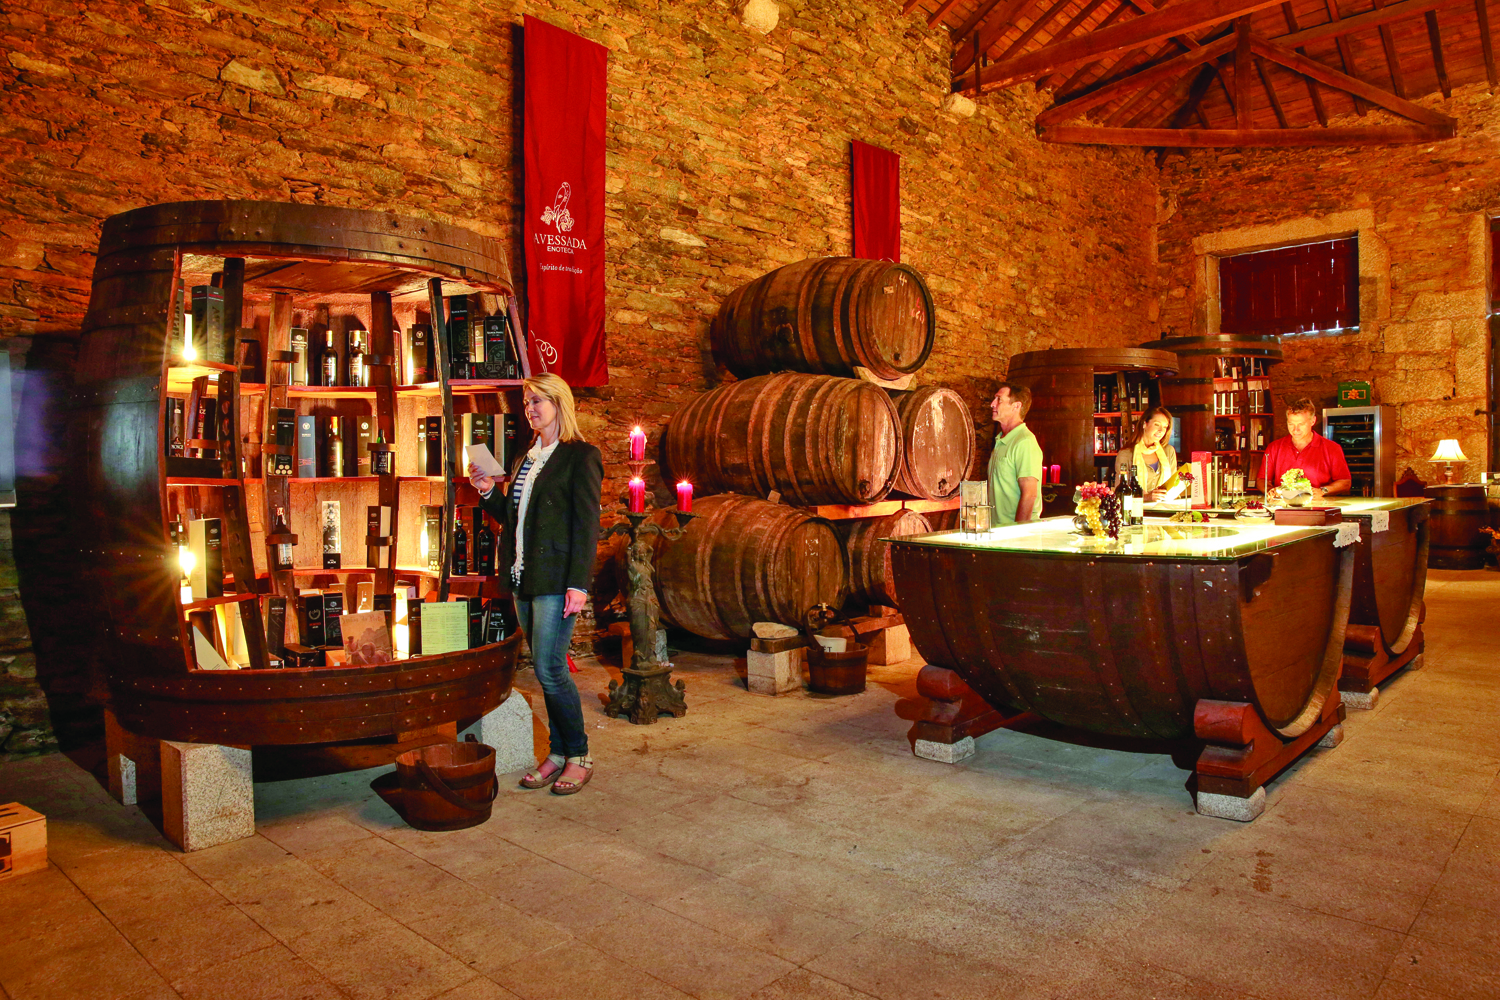 InPinhao, Portugal, guests can visit a wine cellar.